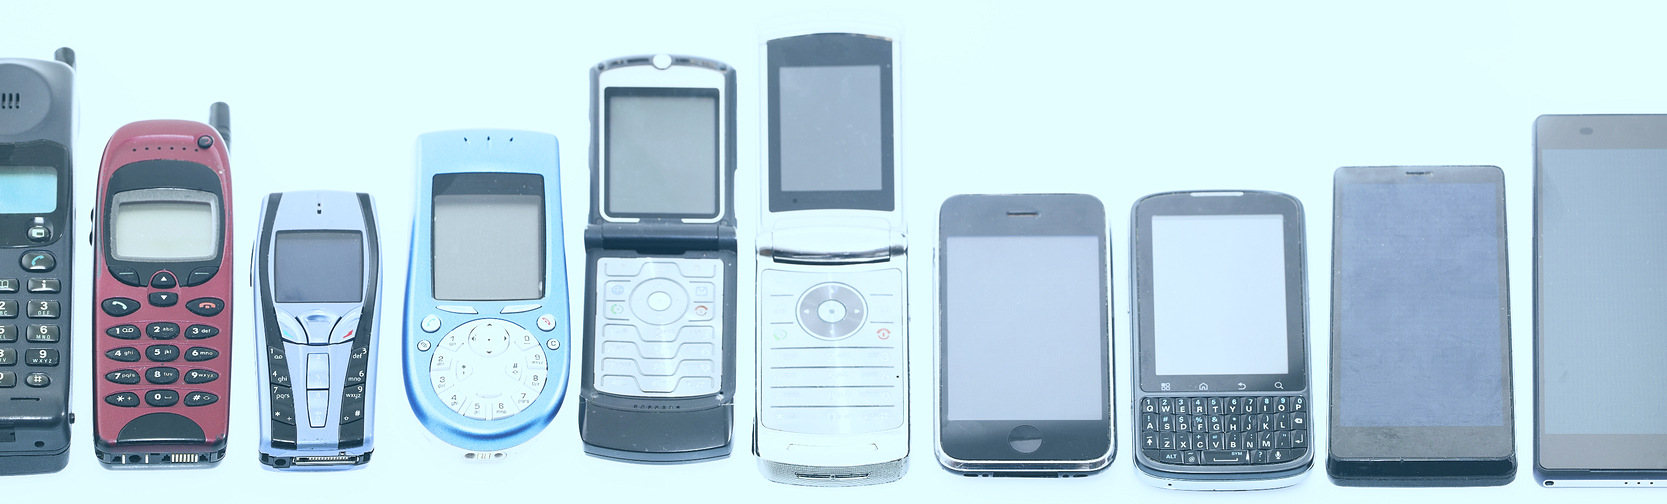 pluses and minuses of mobile phones Fascinating facts about the invention of the mobile phone by richard expensive and far from mobile, the service cost $15 per month, plus 30 to 40.